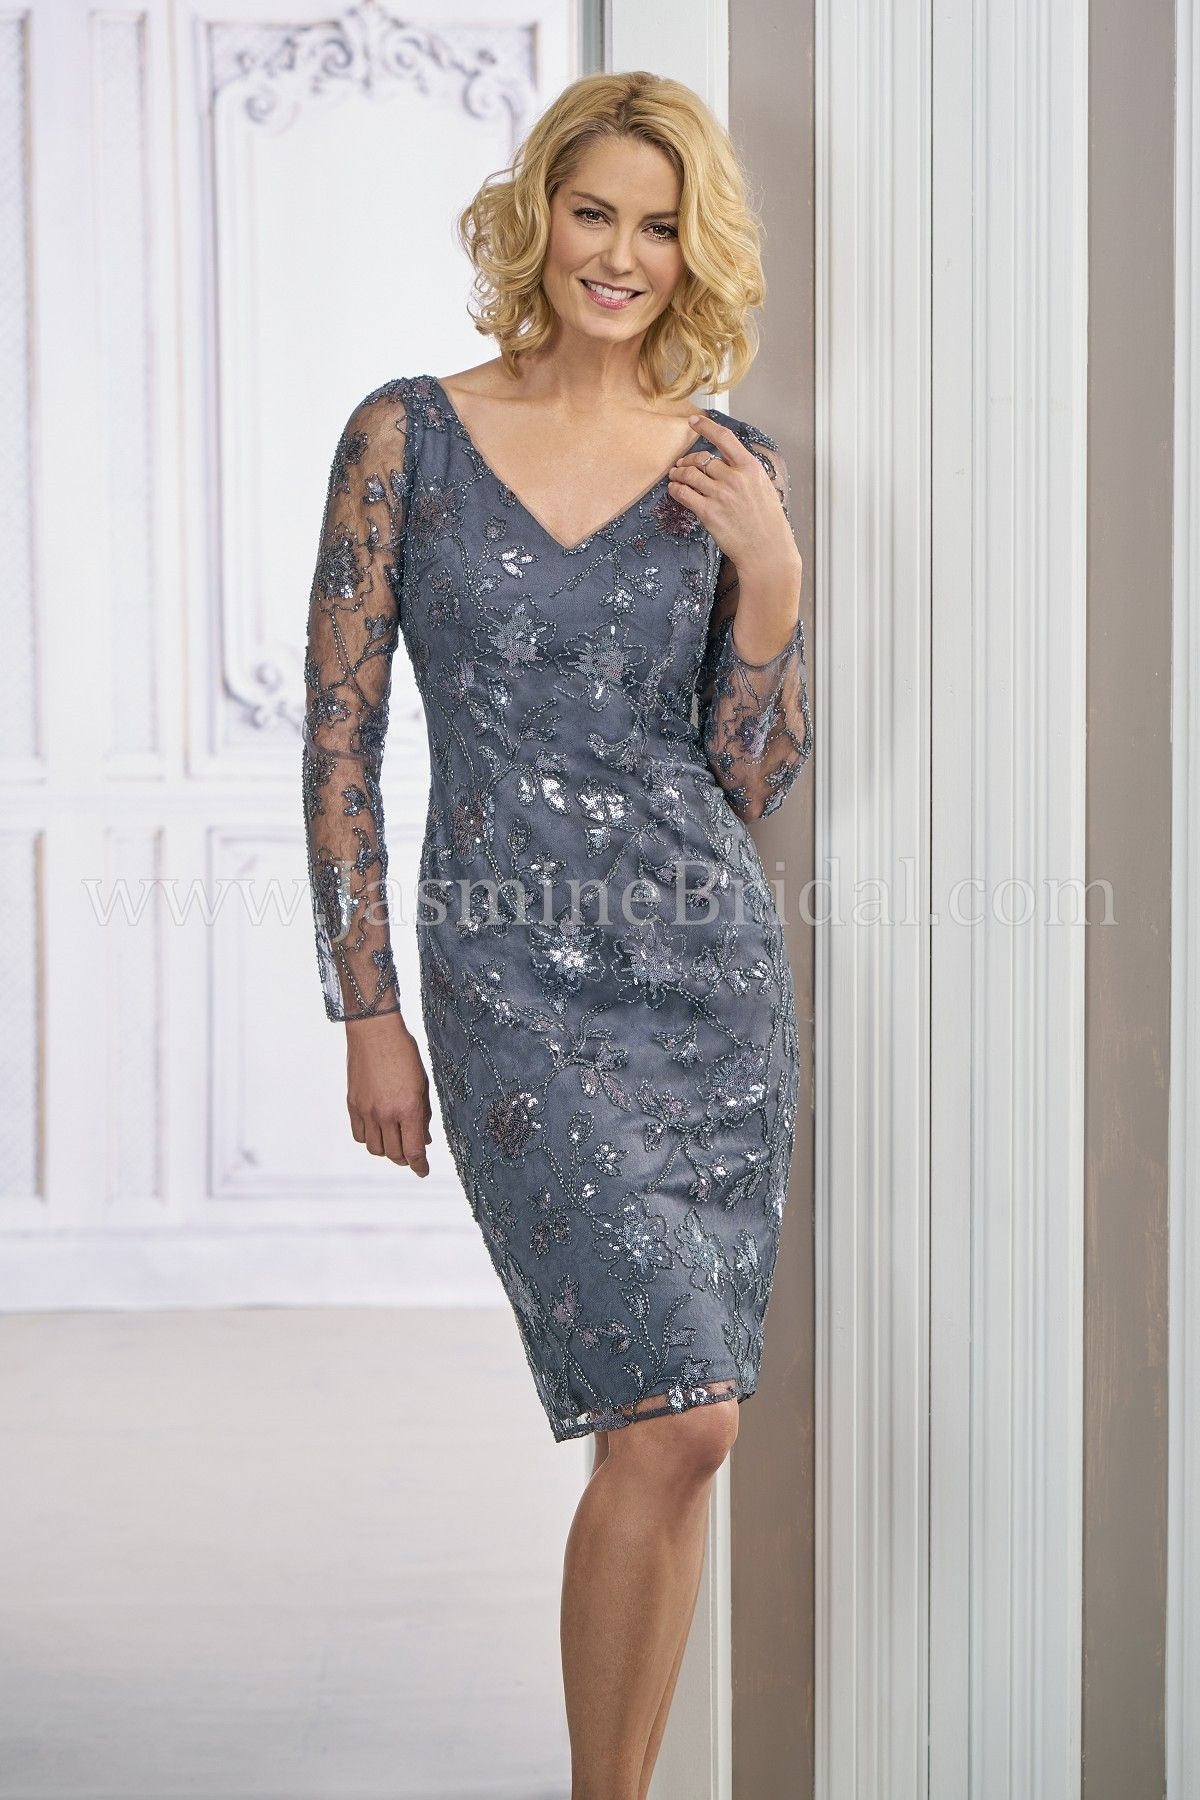 Jasmine Bridal Black Label Style M190011 In Caroline Sequin Lace With Stretch Lining